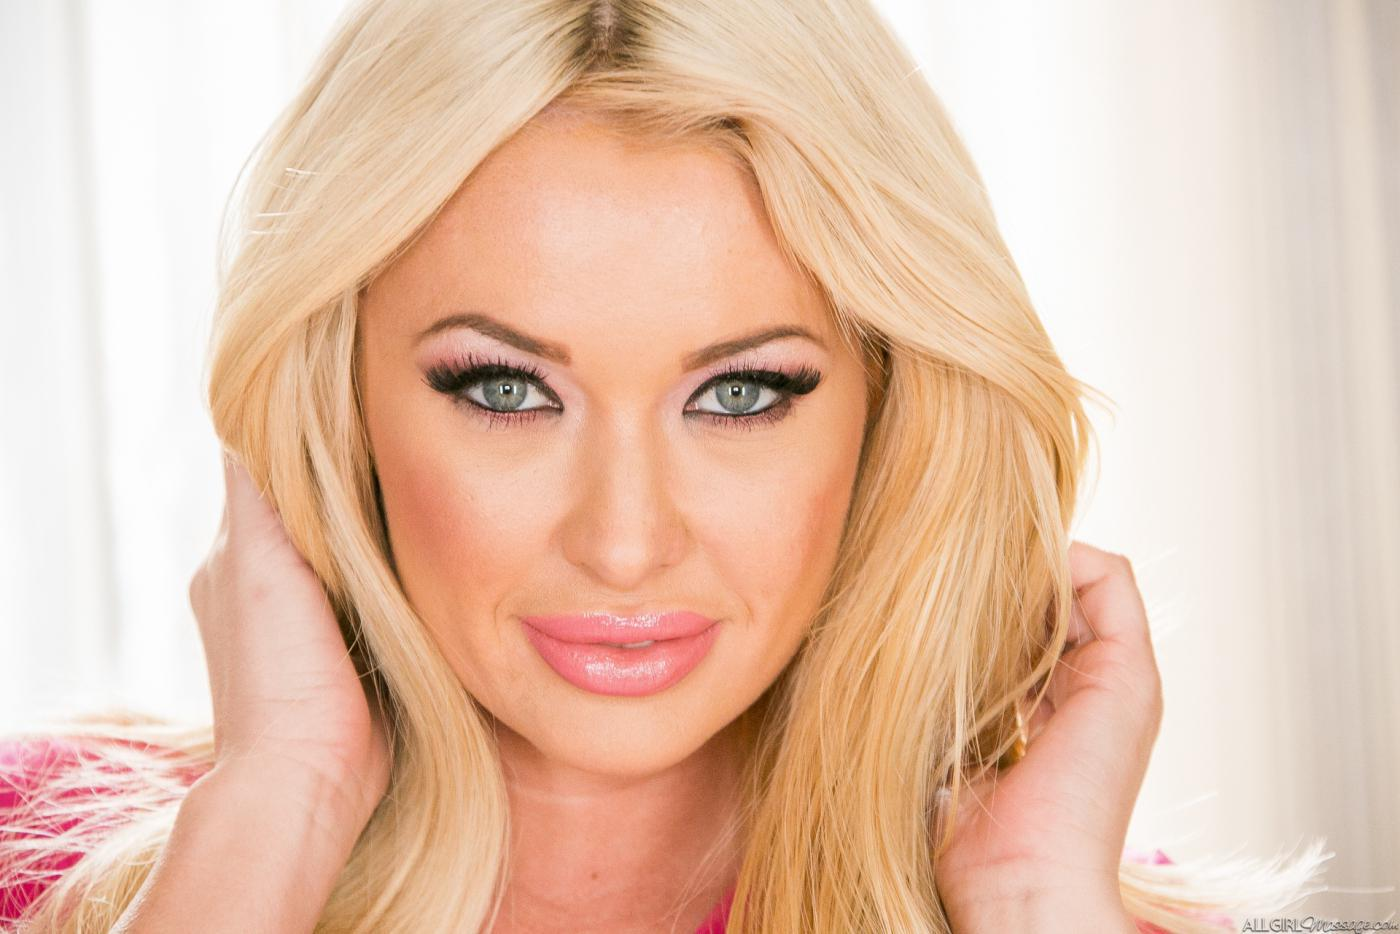 brielle dating site Tall (5'9), buxom, and shapely blonde bombshell summer brielle taylor was born on february 7, 1987 in tennessee following graduation from high .